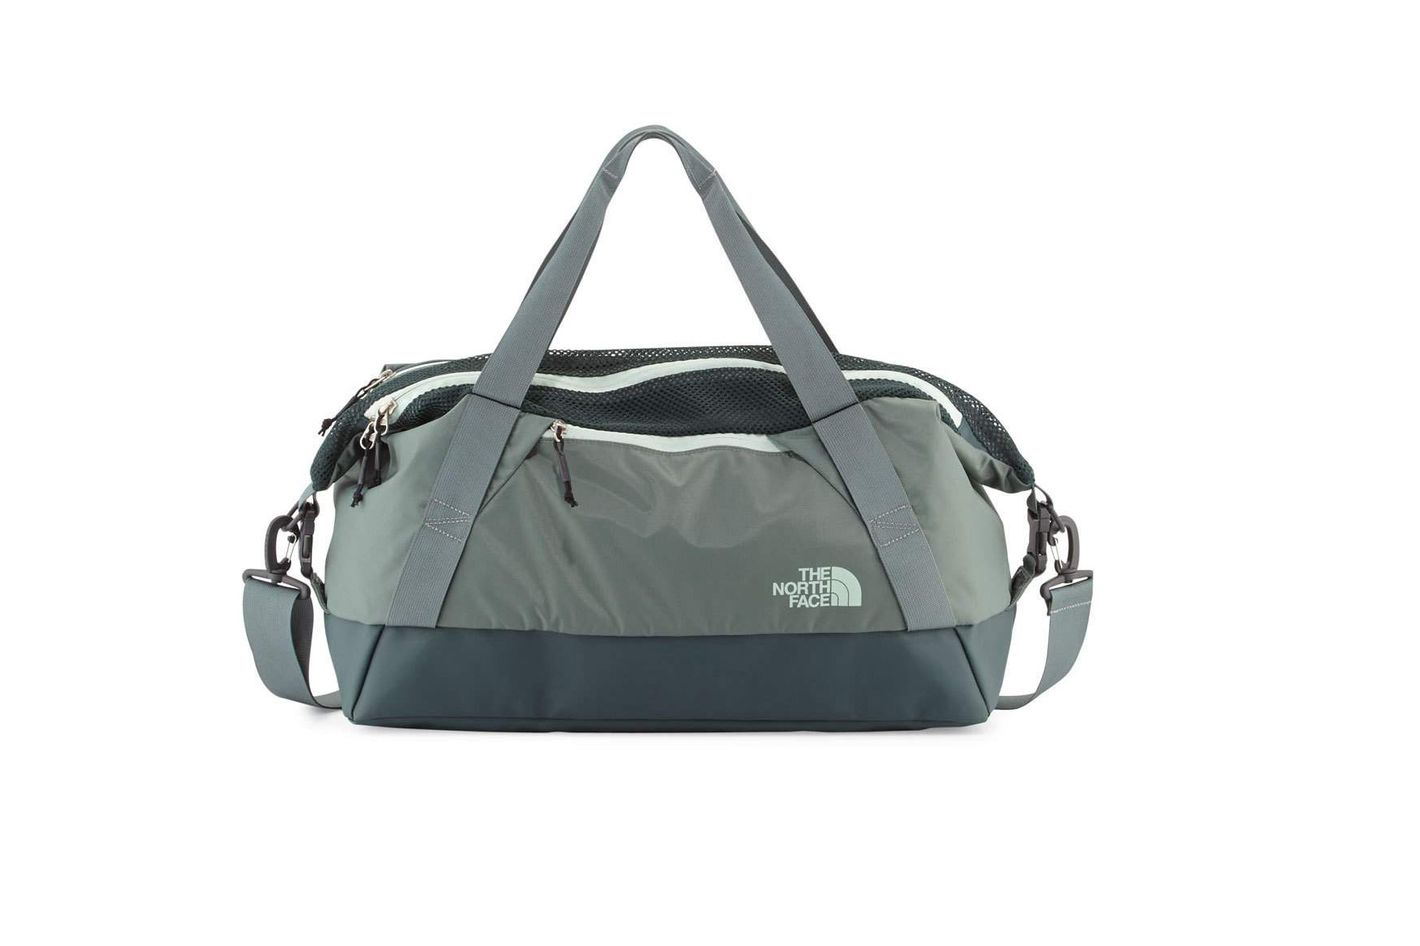 The North Face Apex Gym Duffel Bag at Neiman Marcus. Buy 29e05582f8bf3